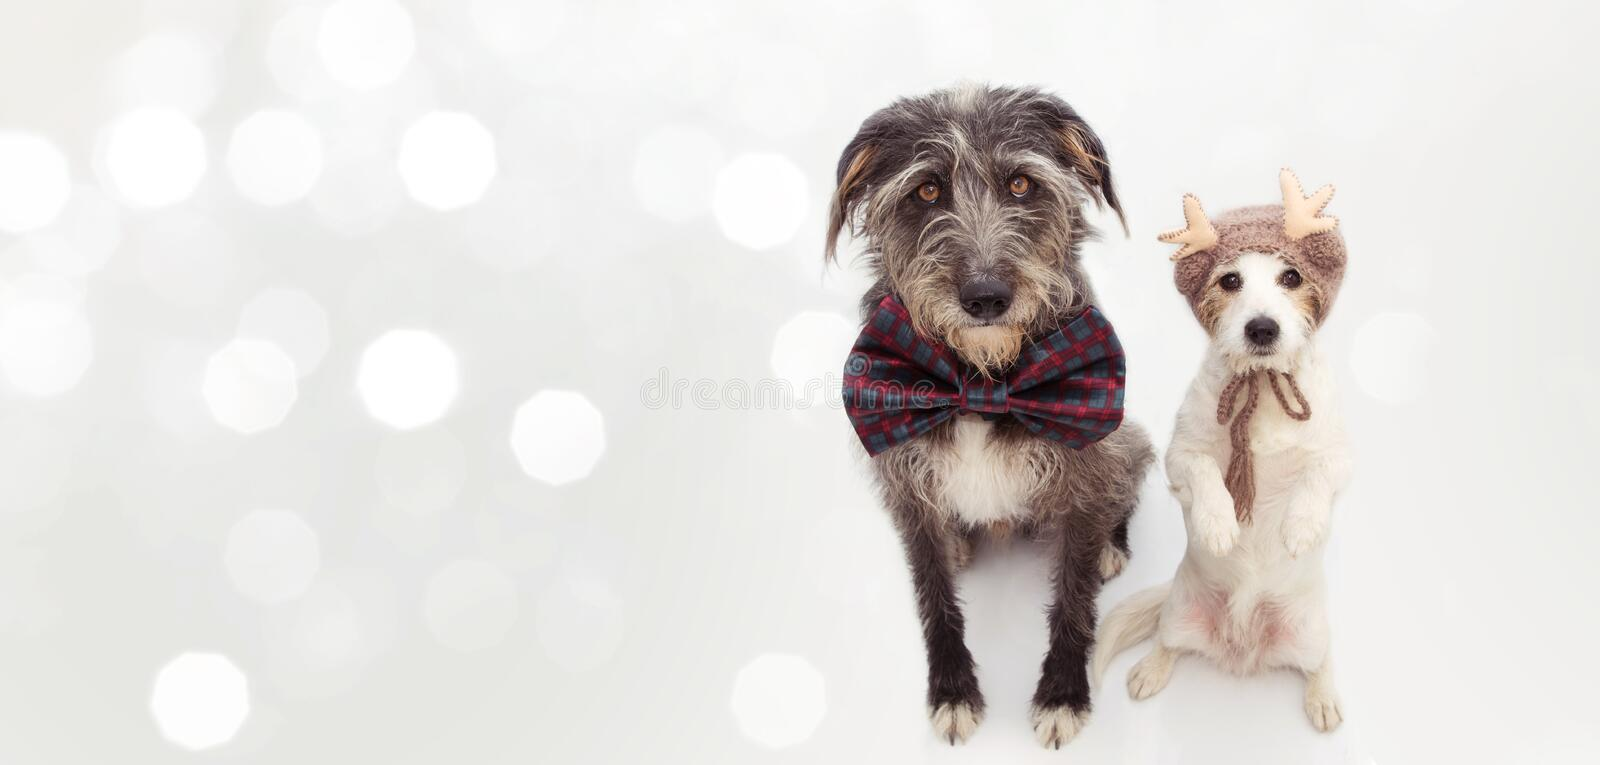 BANNER TWO CHRISTMAS DOGS. JACK RUSSELL AND A SHEEPDOG WEARING A CHECKERED BOW TIE AND A REINDEER HAT. ISOLATED ON WHITE stock images